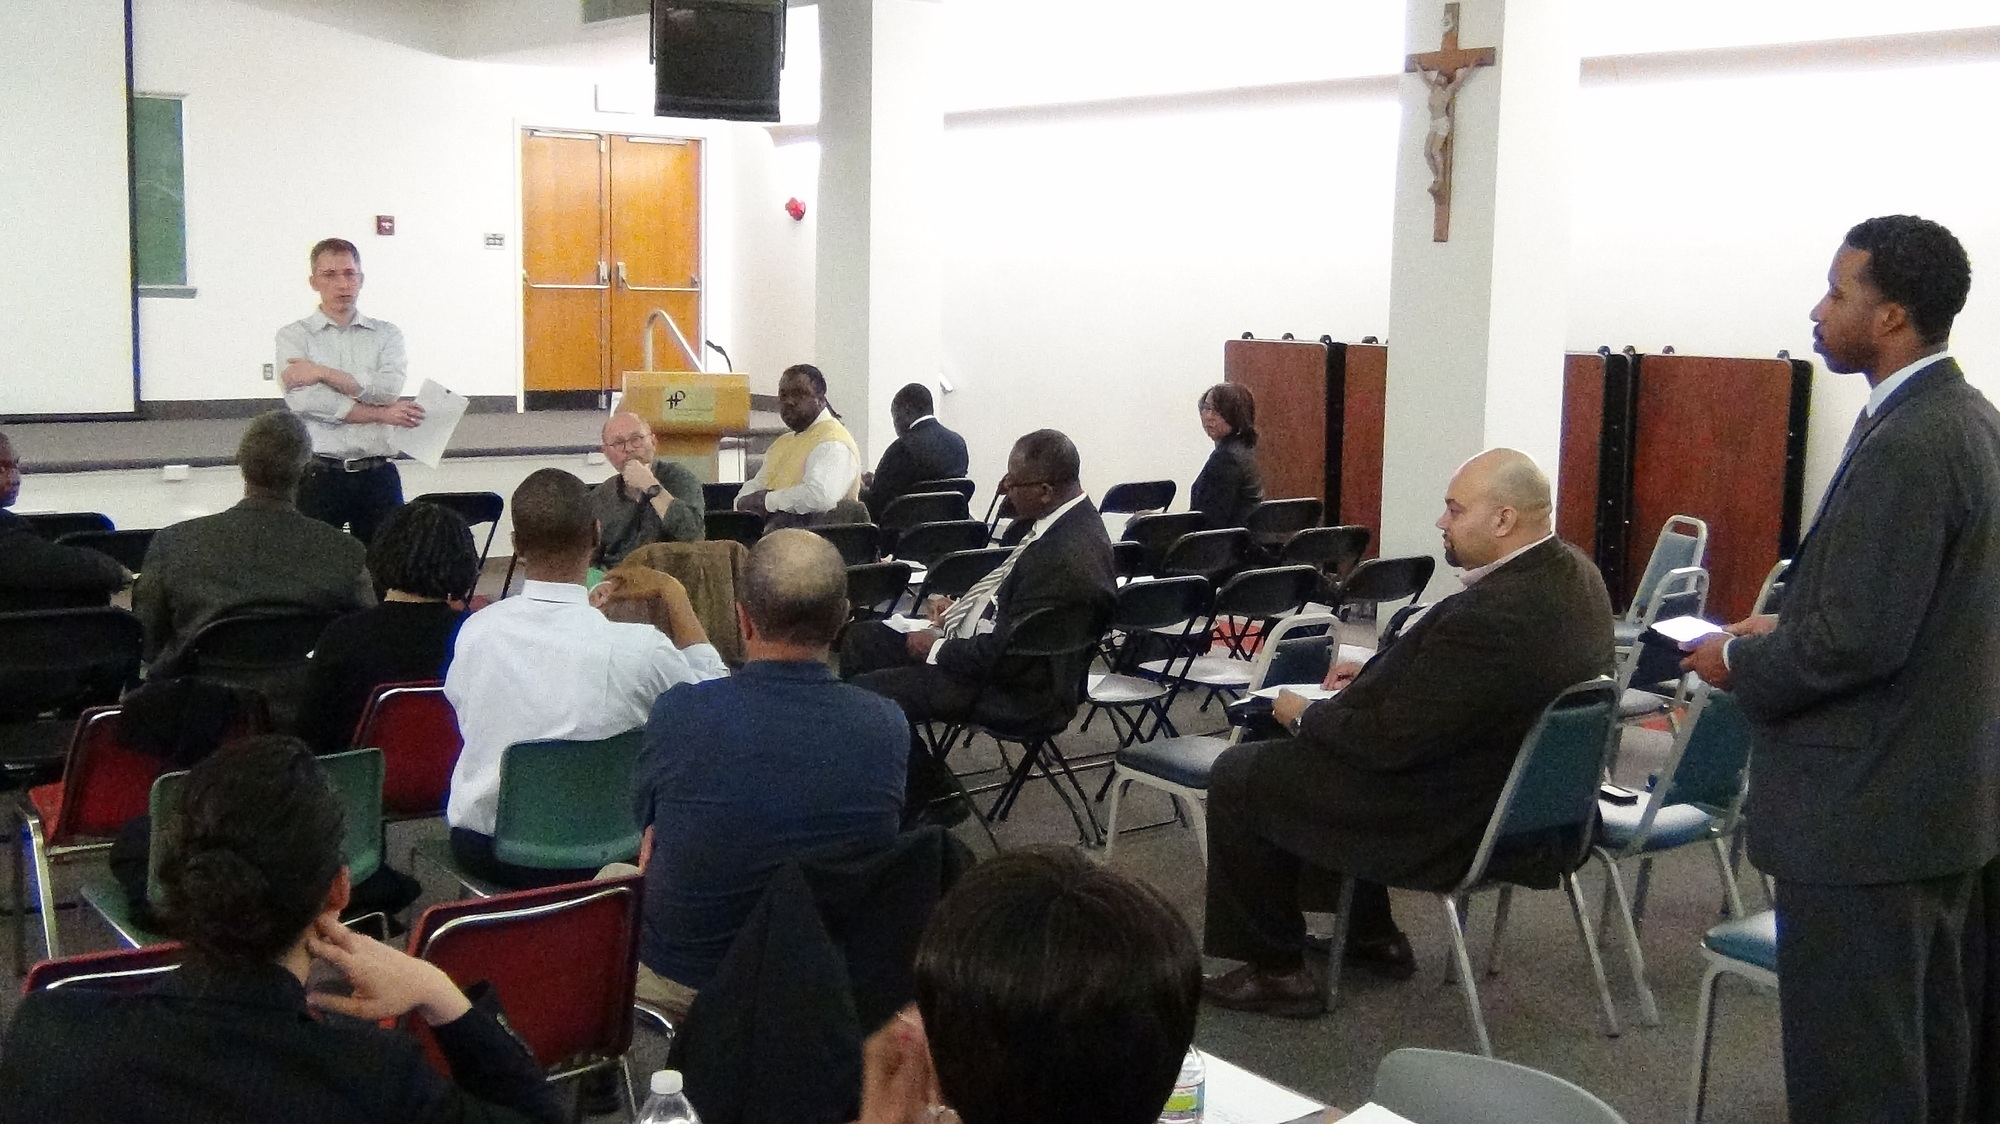 The Ward 5 Small Business Advisory Council Holds Its Inaugural Meeting